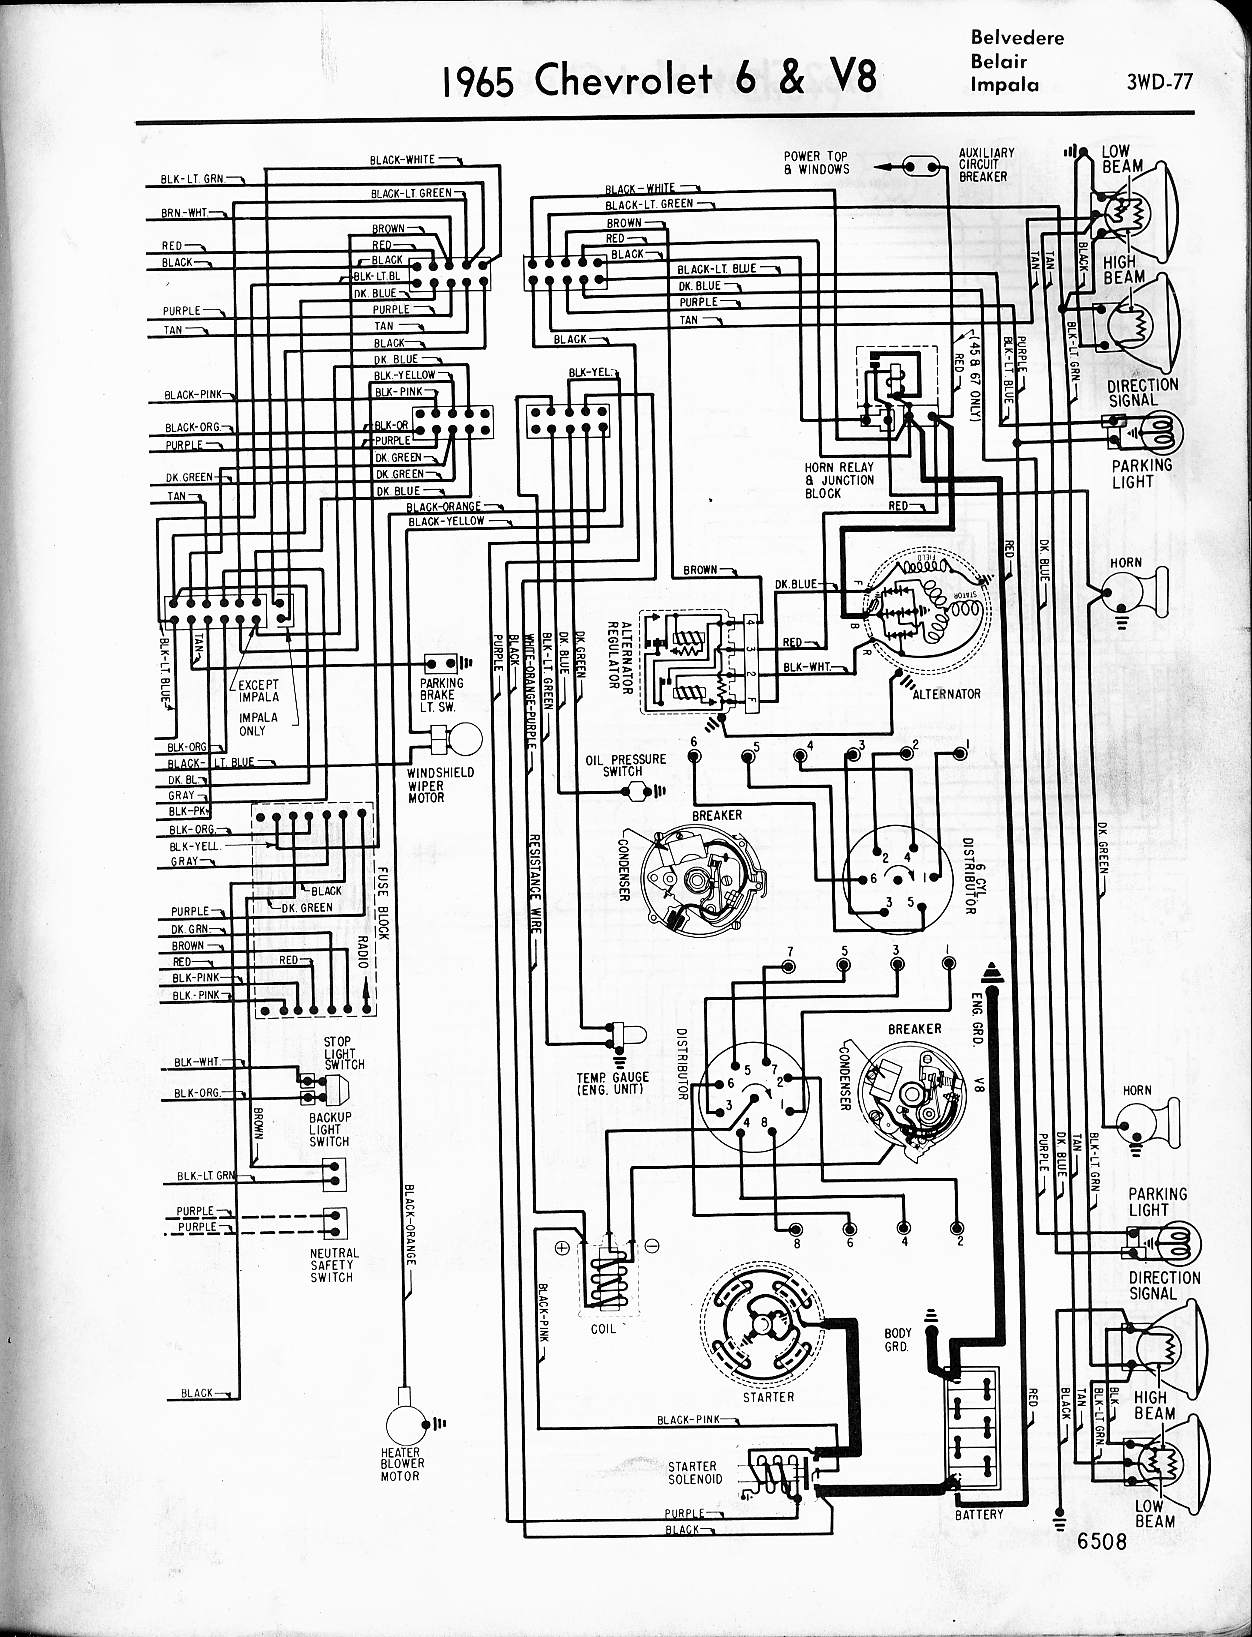 64 Mustang Turn Signal Wiring Diagram Schematic Archive Of In An Eg H22 Distributor 1965 Chevelle Data Schema Rh Site De Joueurs Com